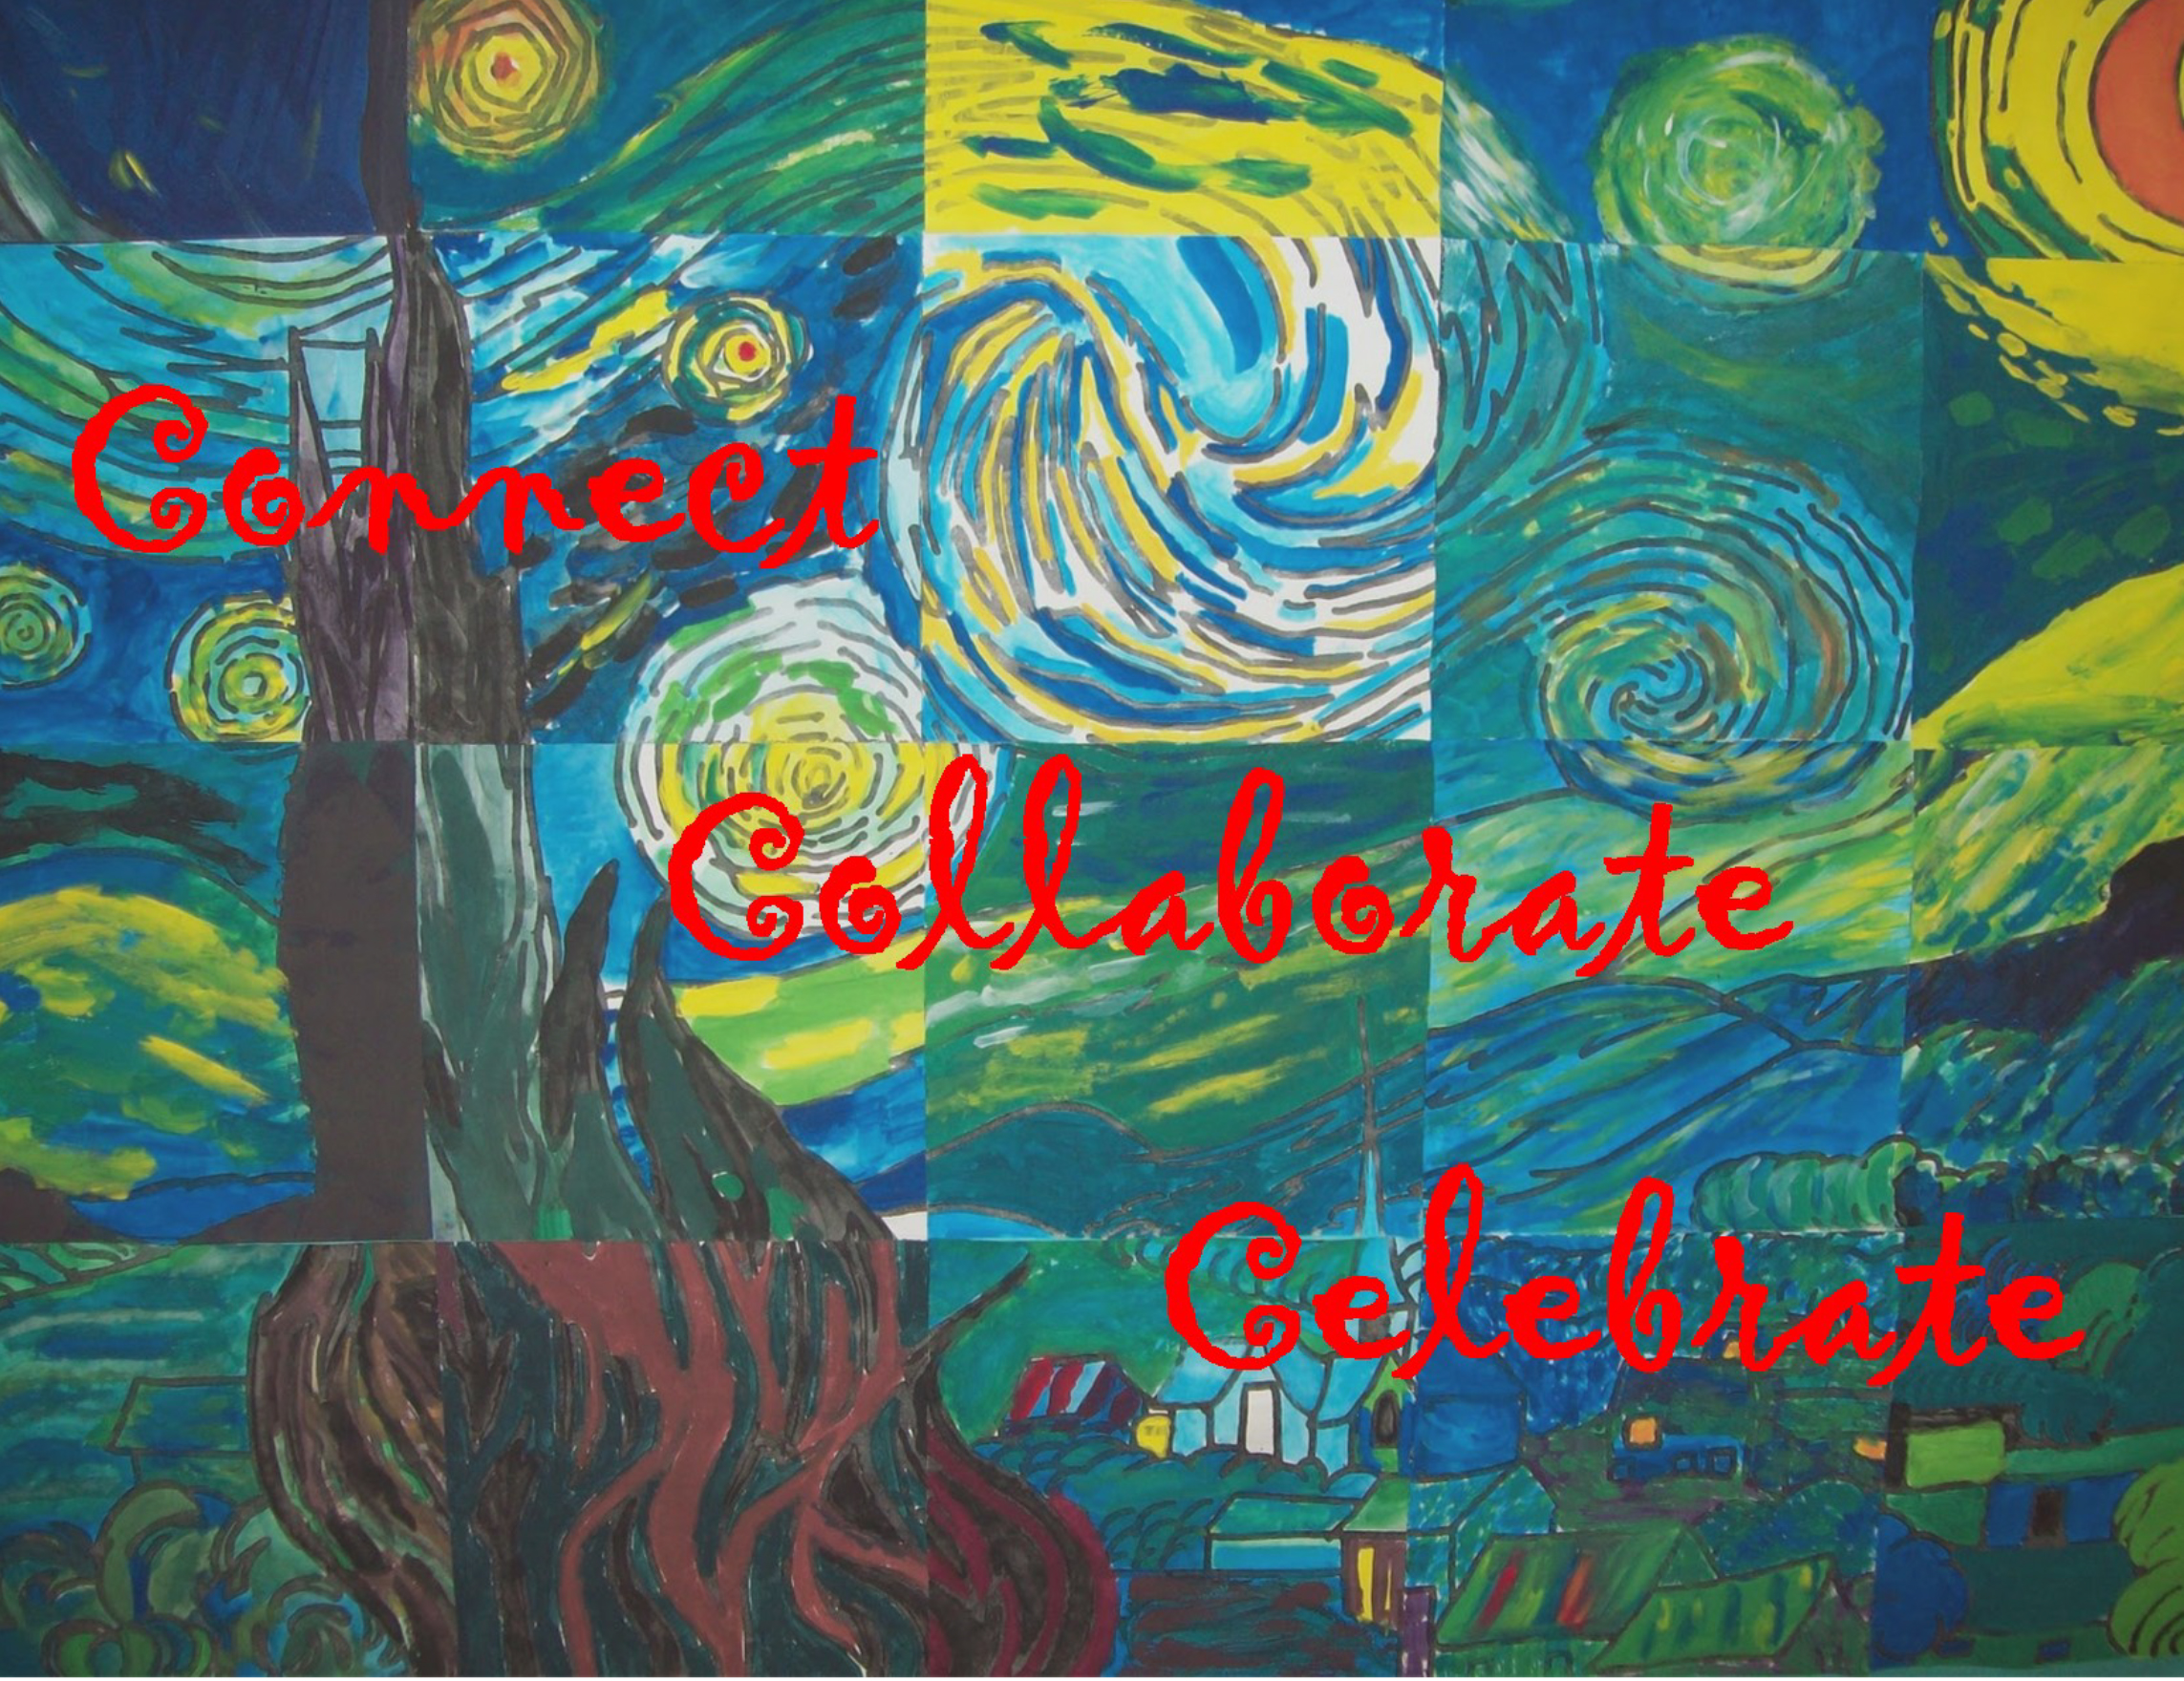 Van Gogh Painting with text Connect, Collaborate, Celebrate